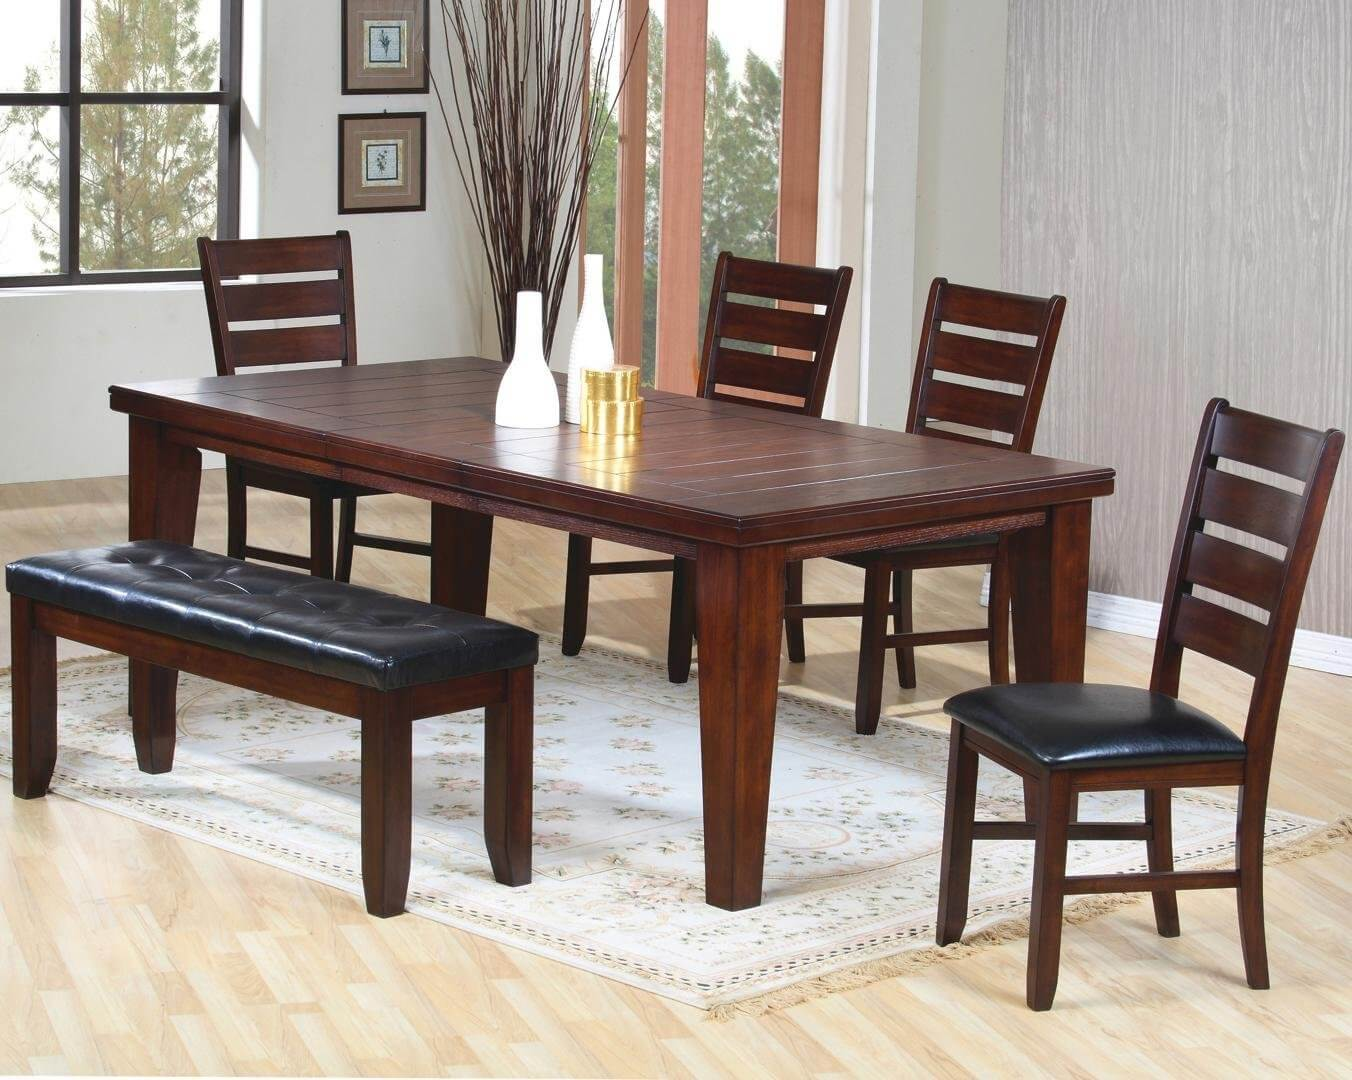 26 Dining Room Furniture Sets with a Bench & 26 Dining Room Sets (Big and Small) with Bench Seating (2018)